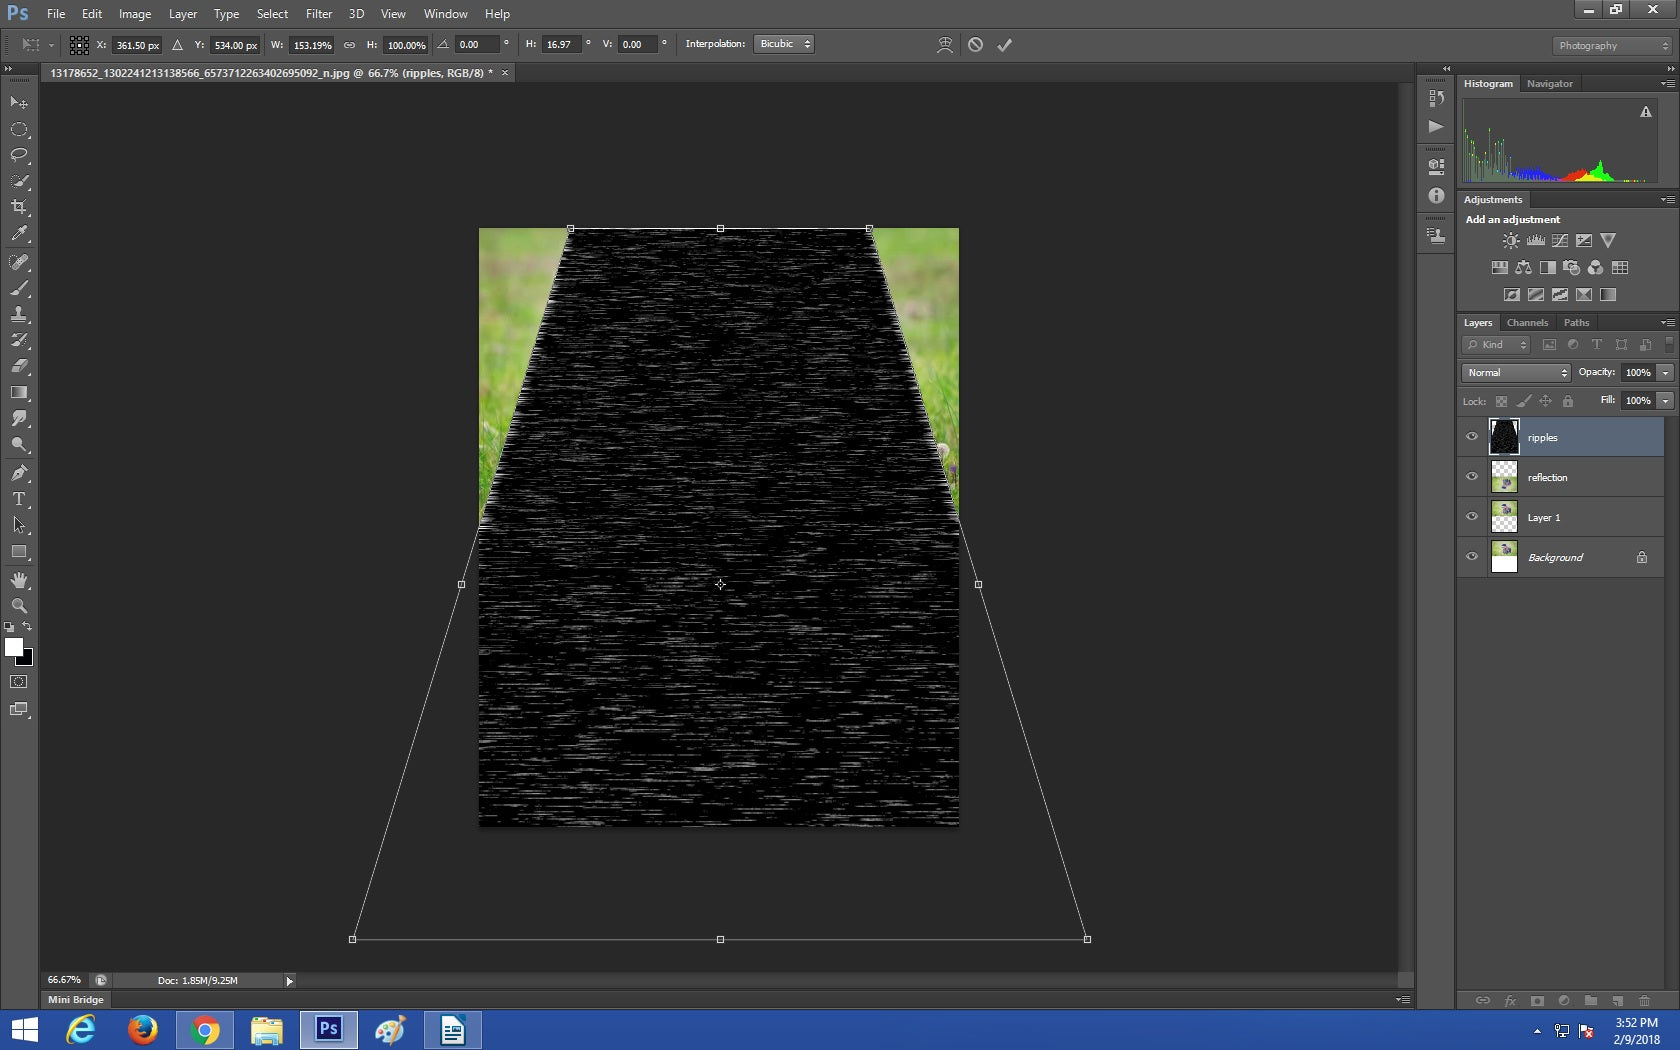 Slightly adjusting an image perspective in Photoshop